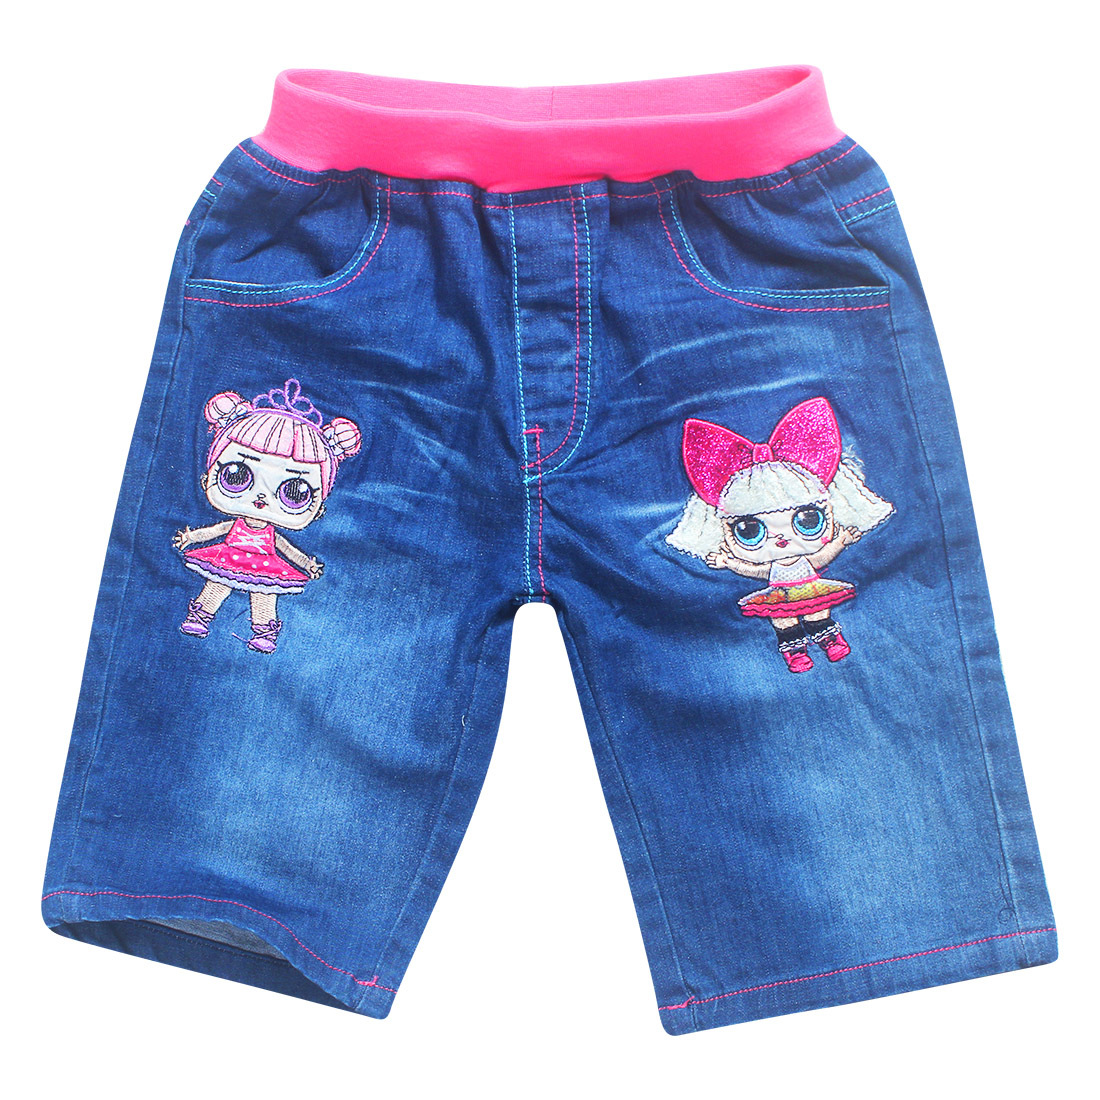 2018 lol roblox Cotton pine tight jeans shorts childrens fashion girl fashion girl fashi ...